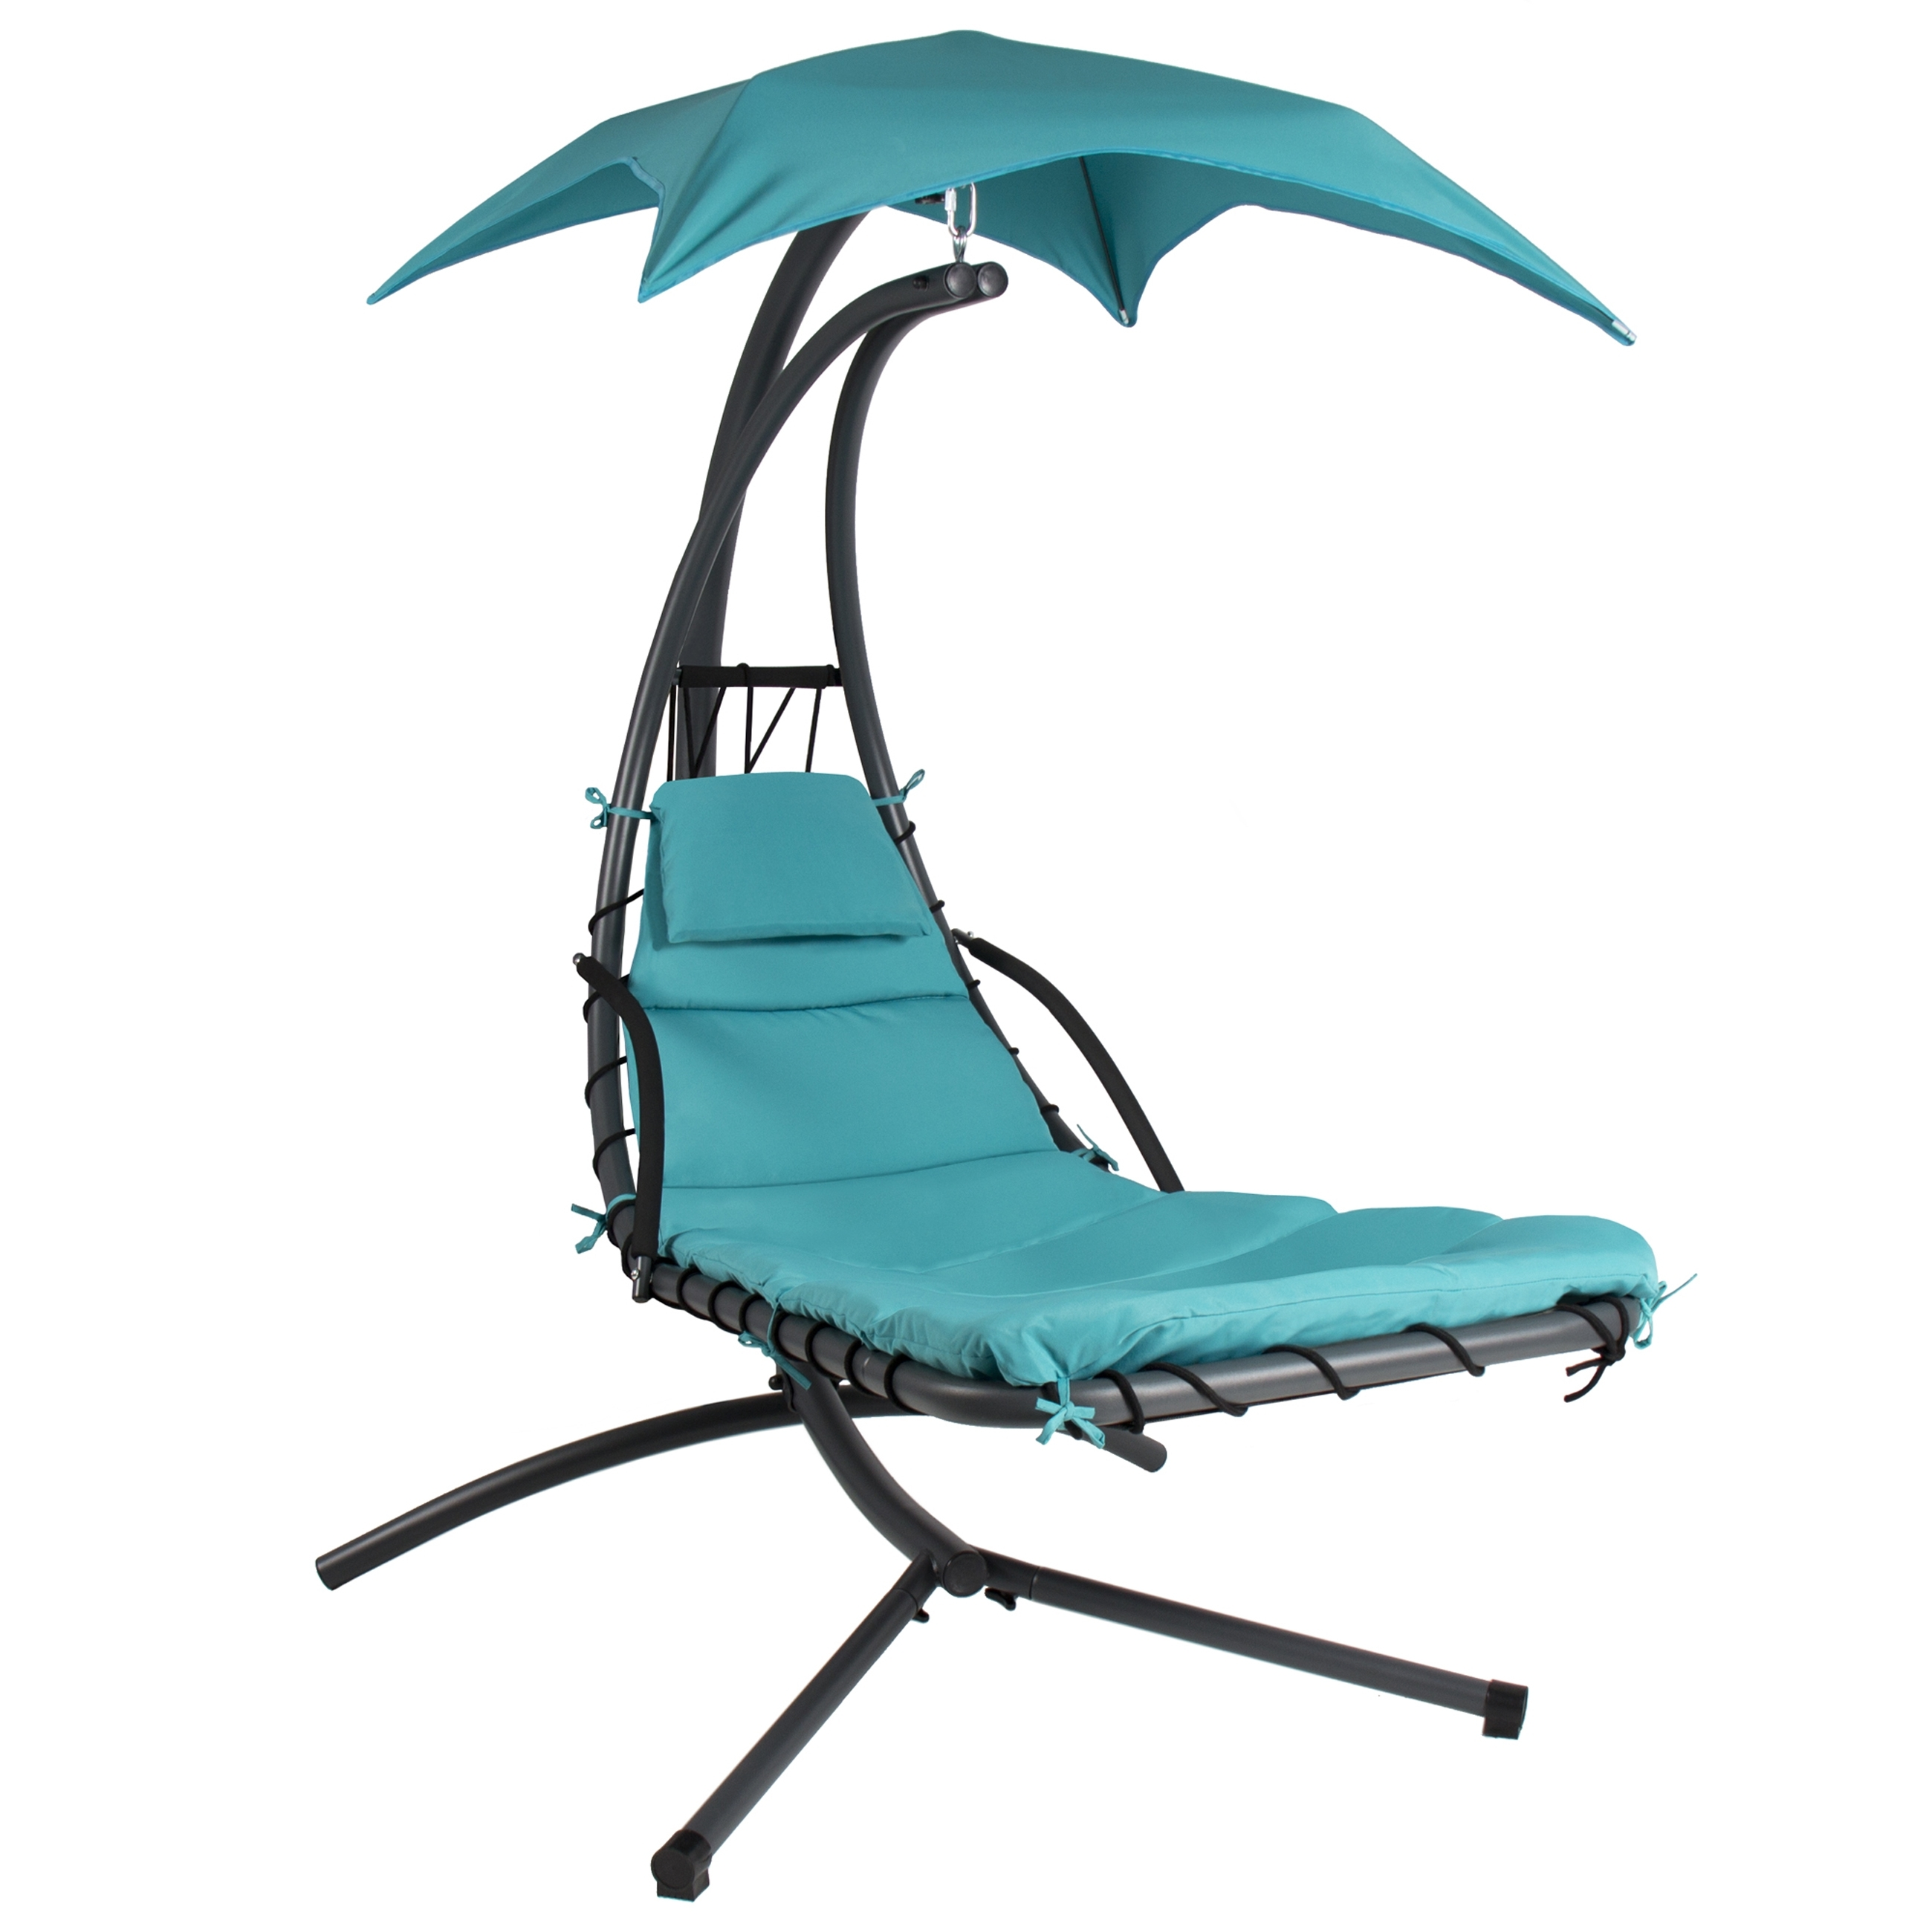 Hanging Chaise Lounger Chair Arc Stand Air Porch Swing Hammock Pertaining To 2018 Chaise Lounge Swing Chairs (View 4 of 15)